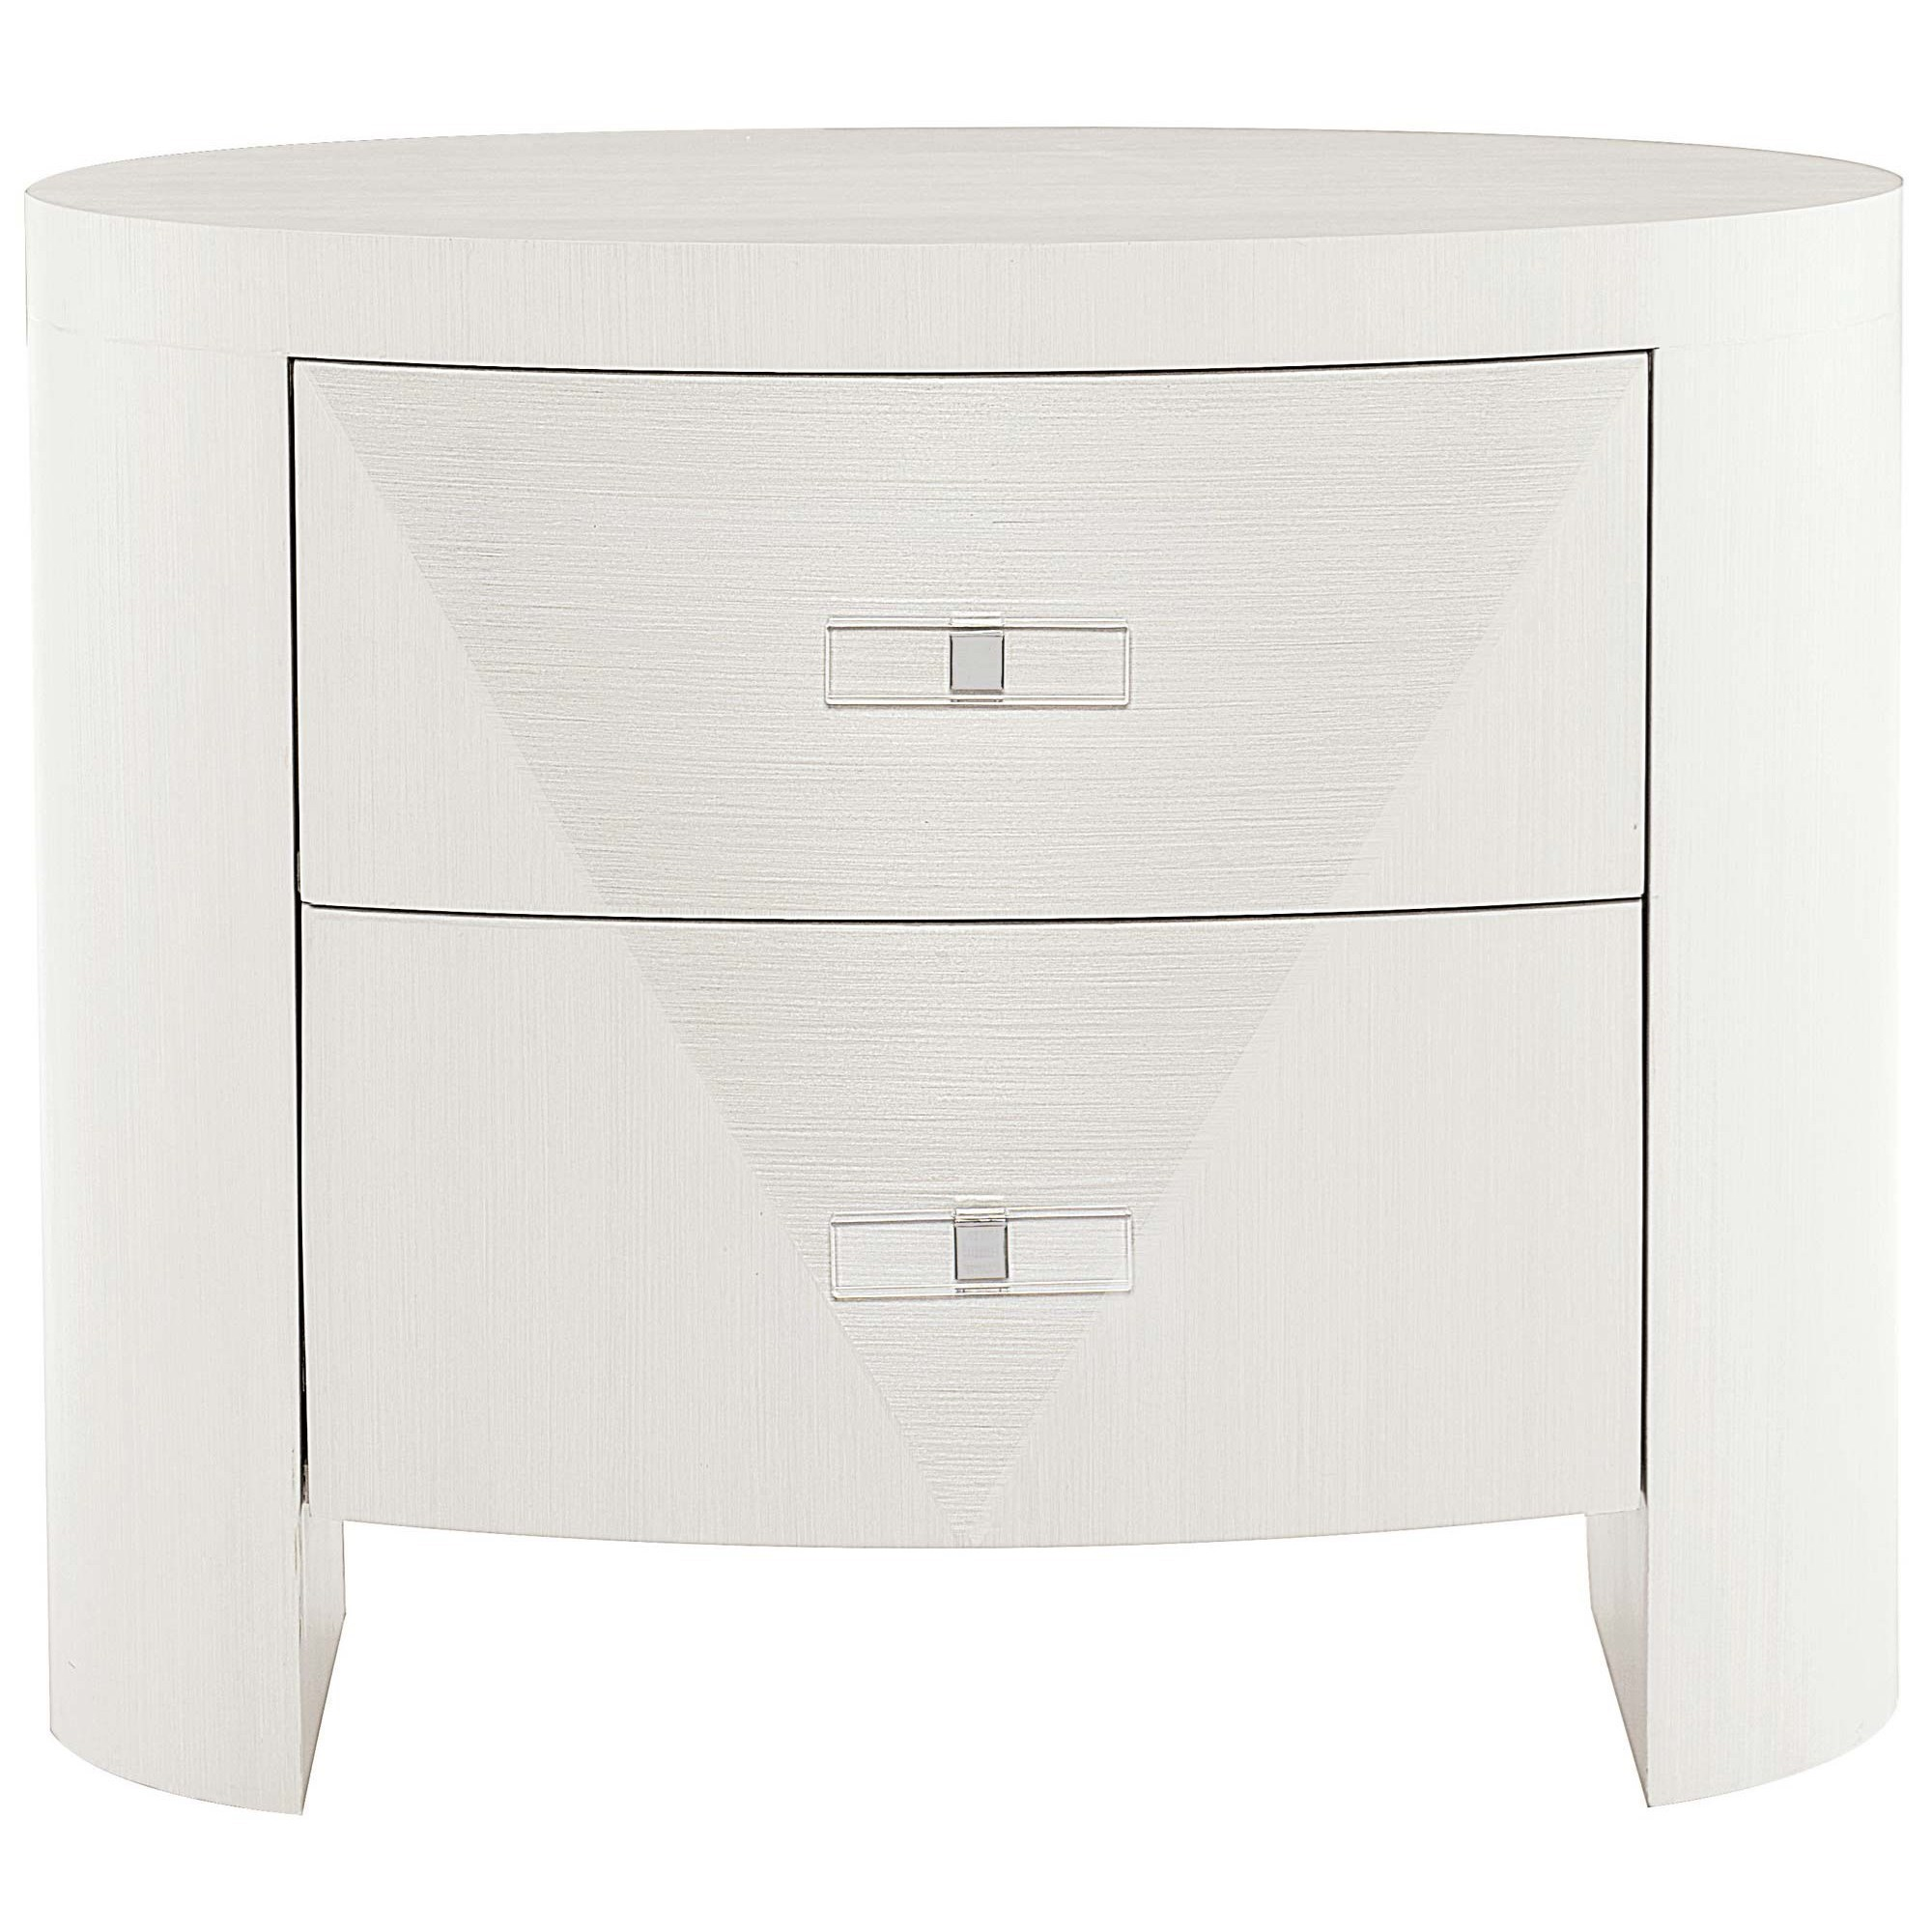 Contemporary Oval Nightstand with 2 Drawers